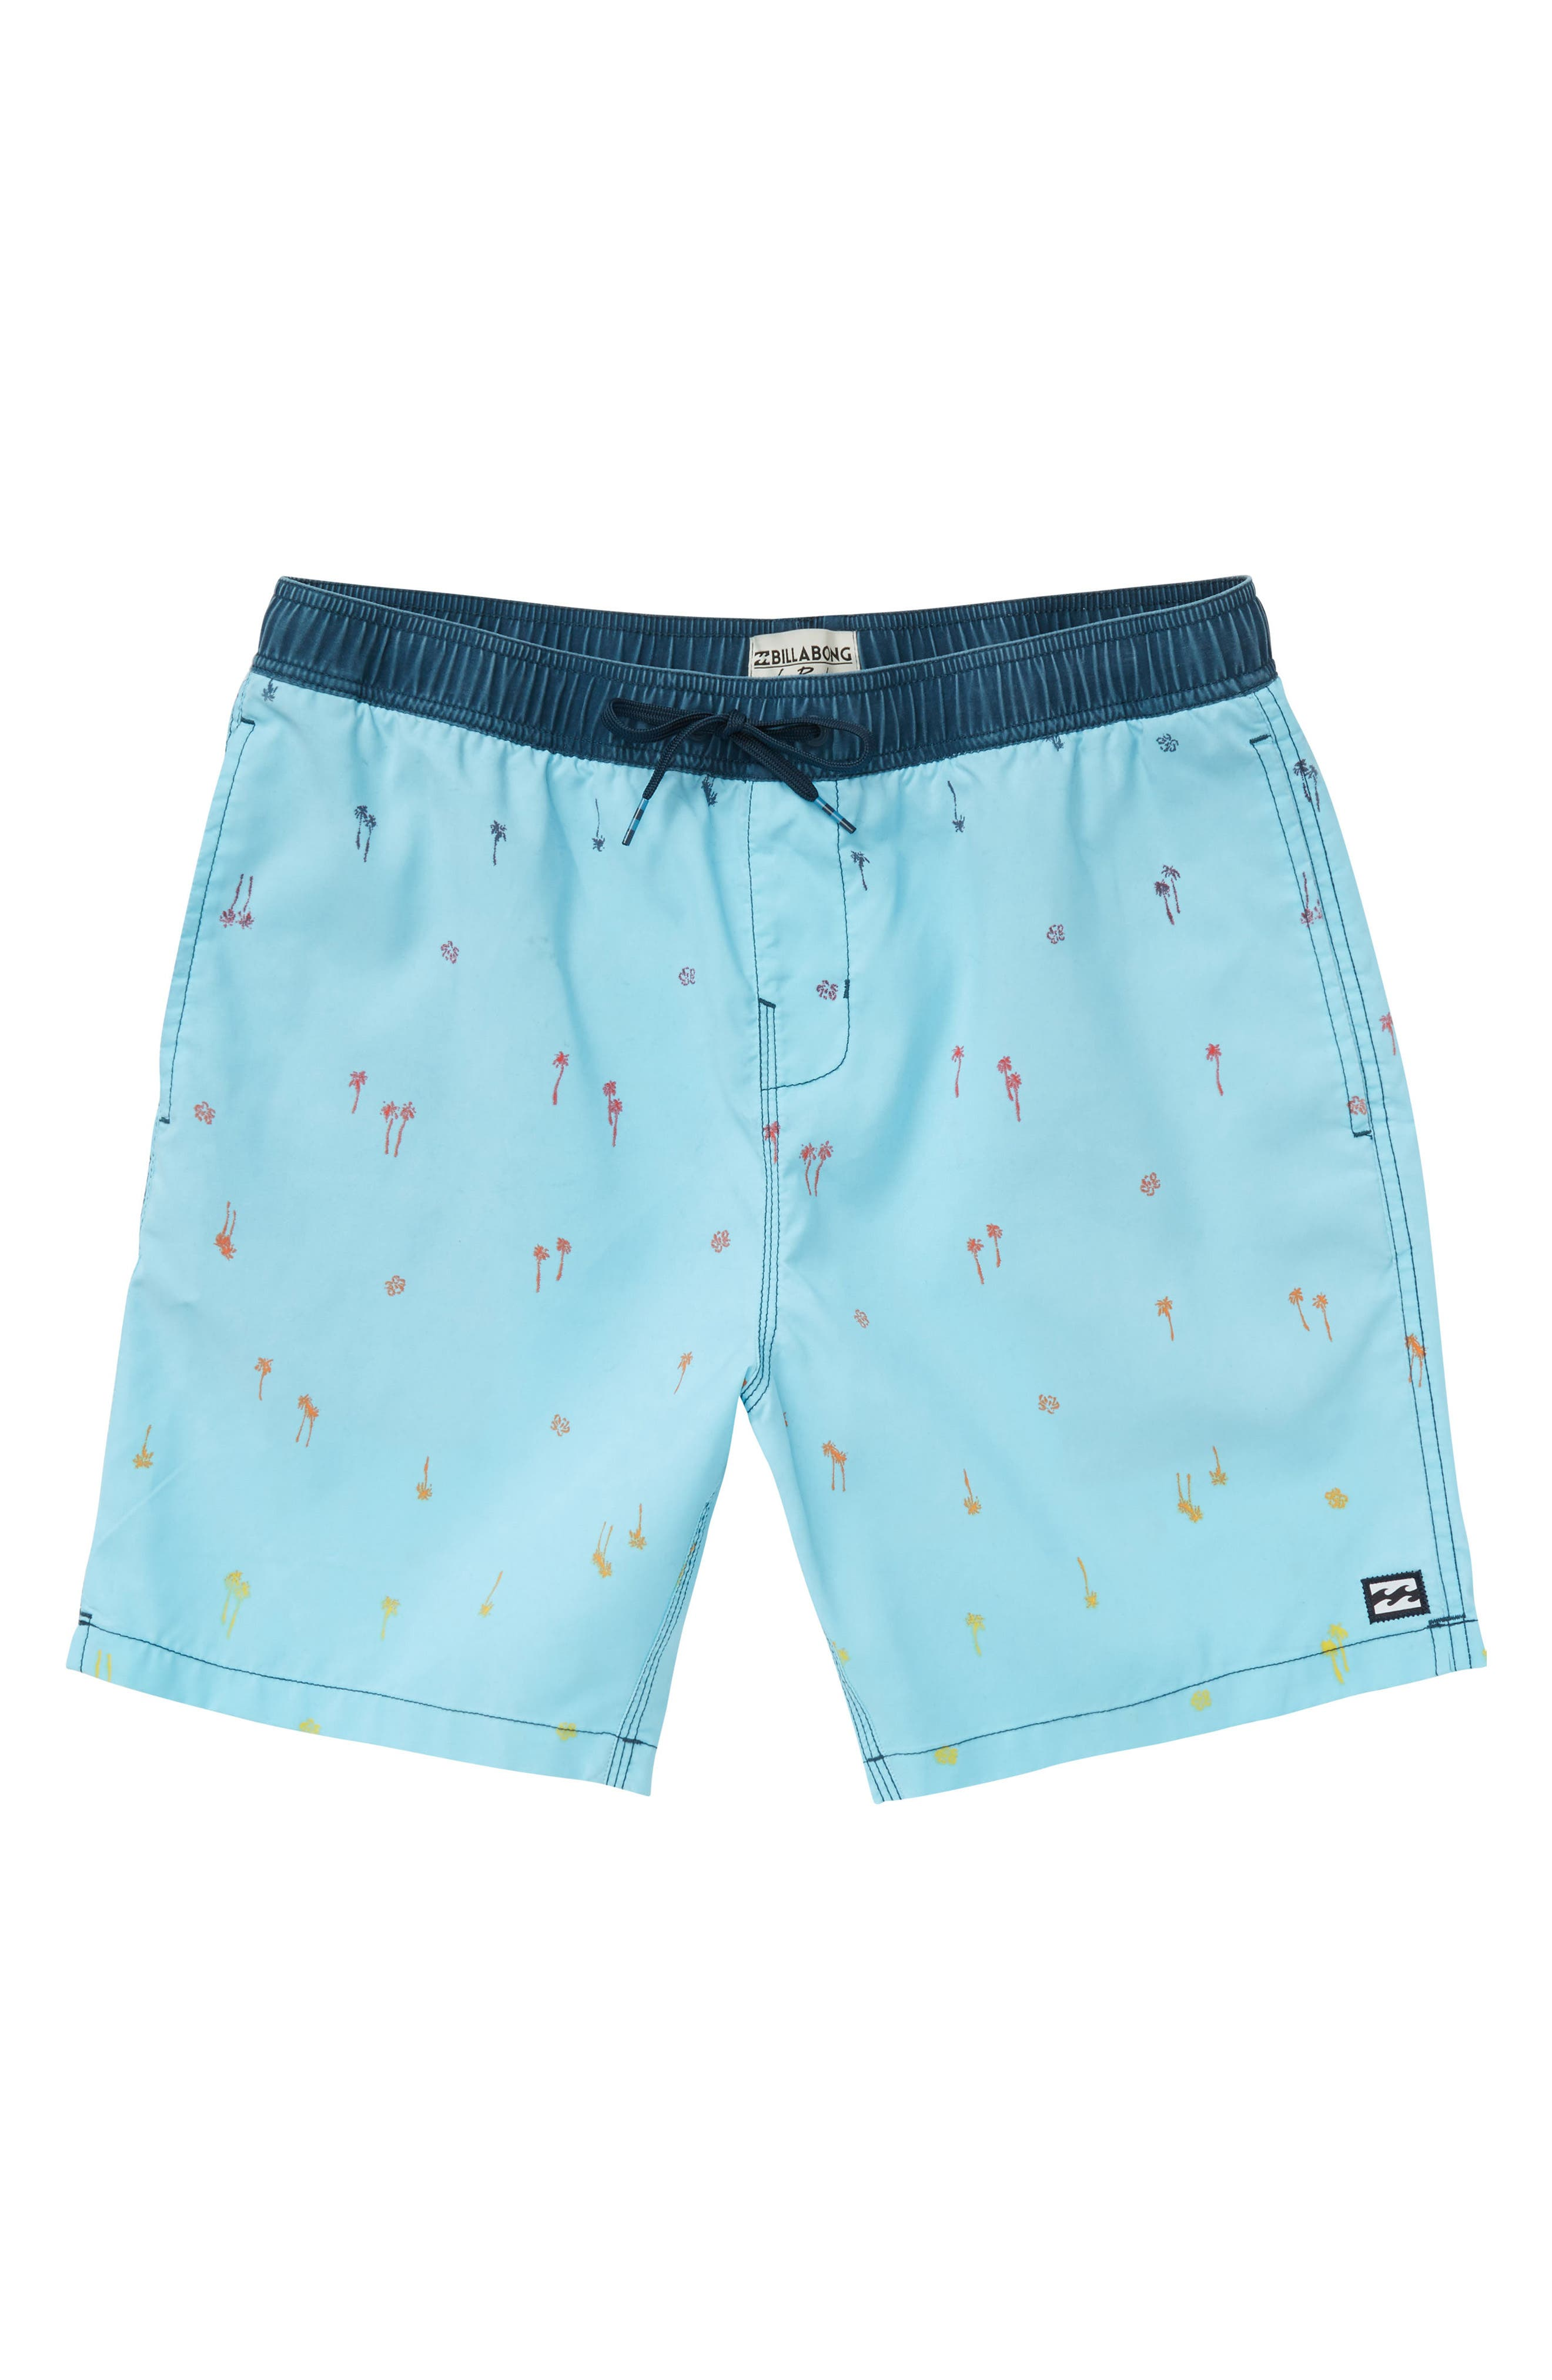 Billabong Sundays Layback Swim Trunks (Big Boys)